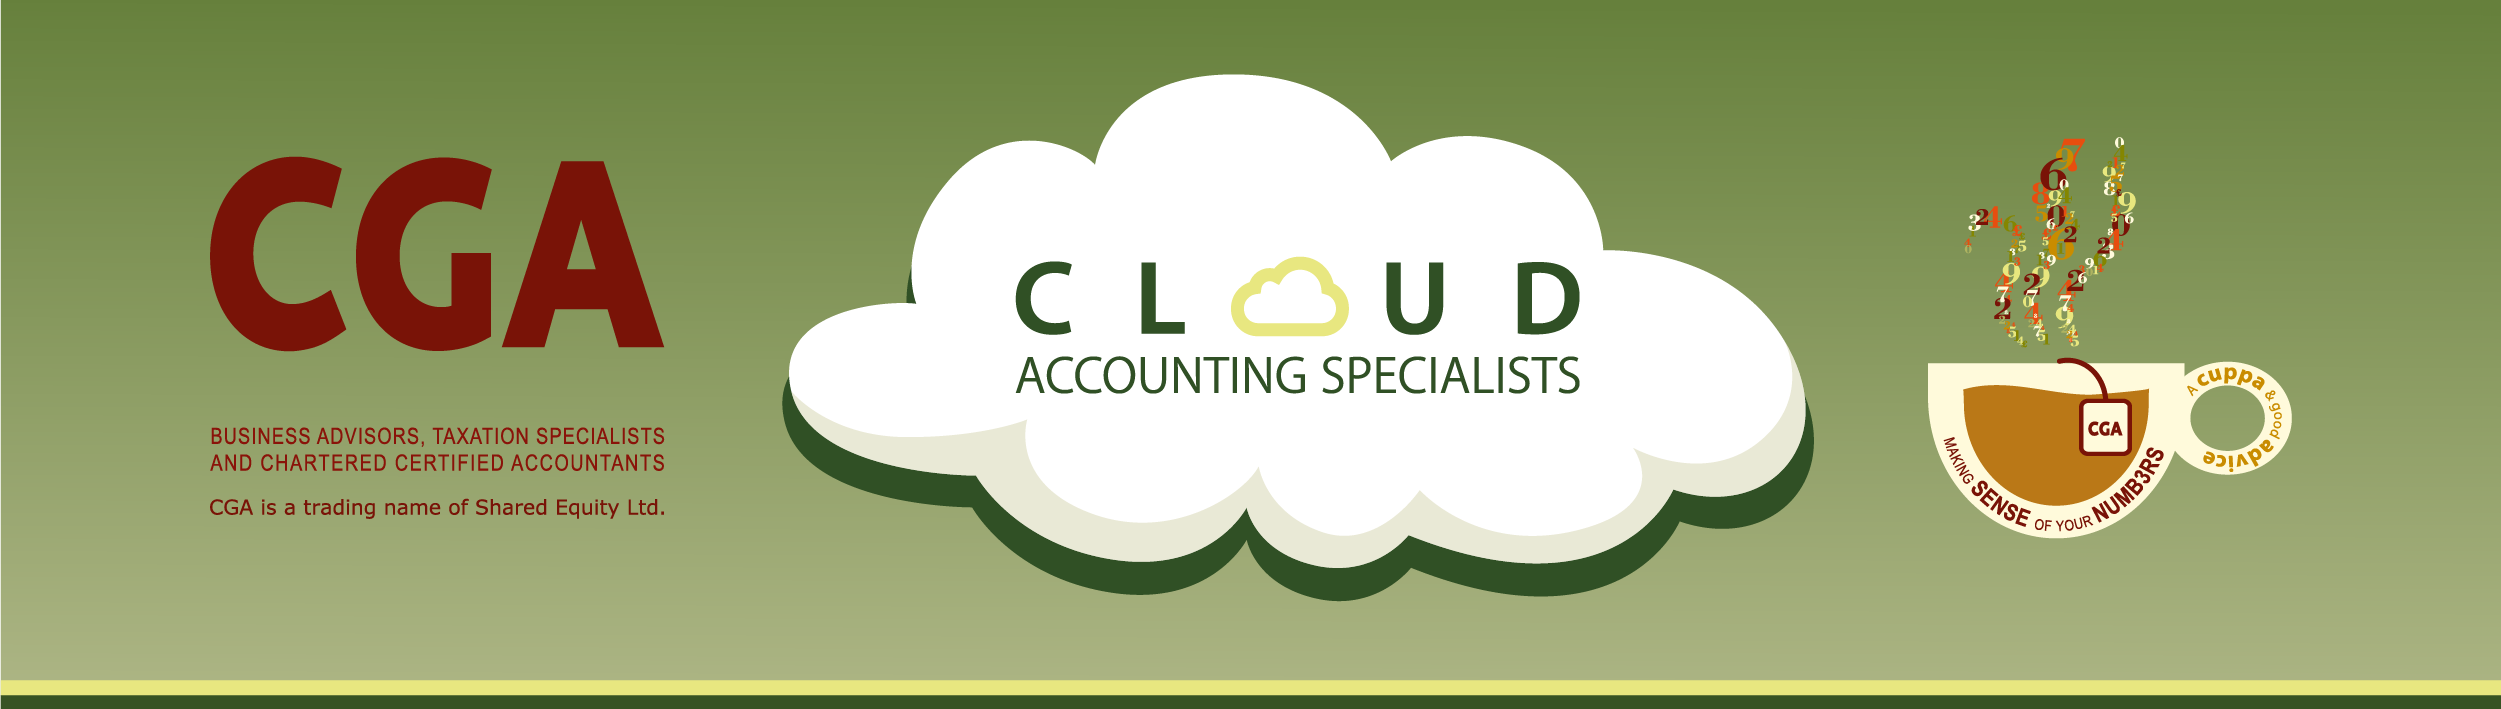 CGA Accountancy - Cloud Accounting Specialists Email Newsletter Sign Up